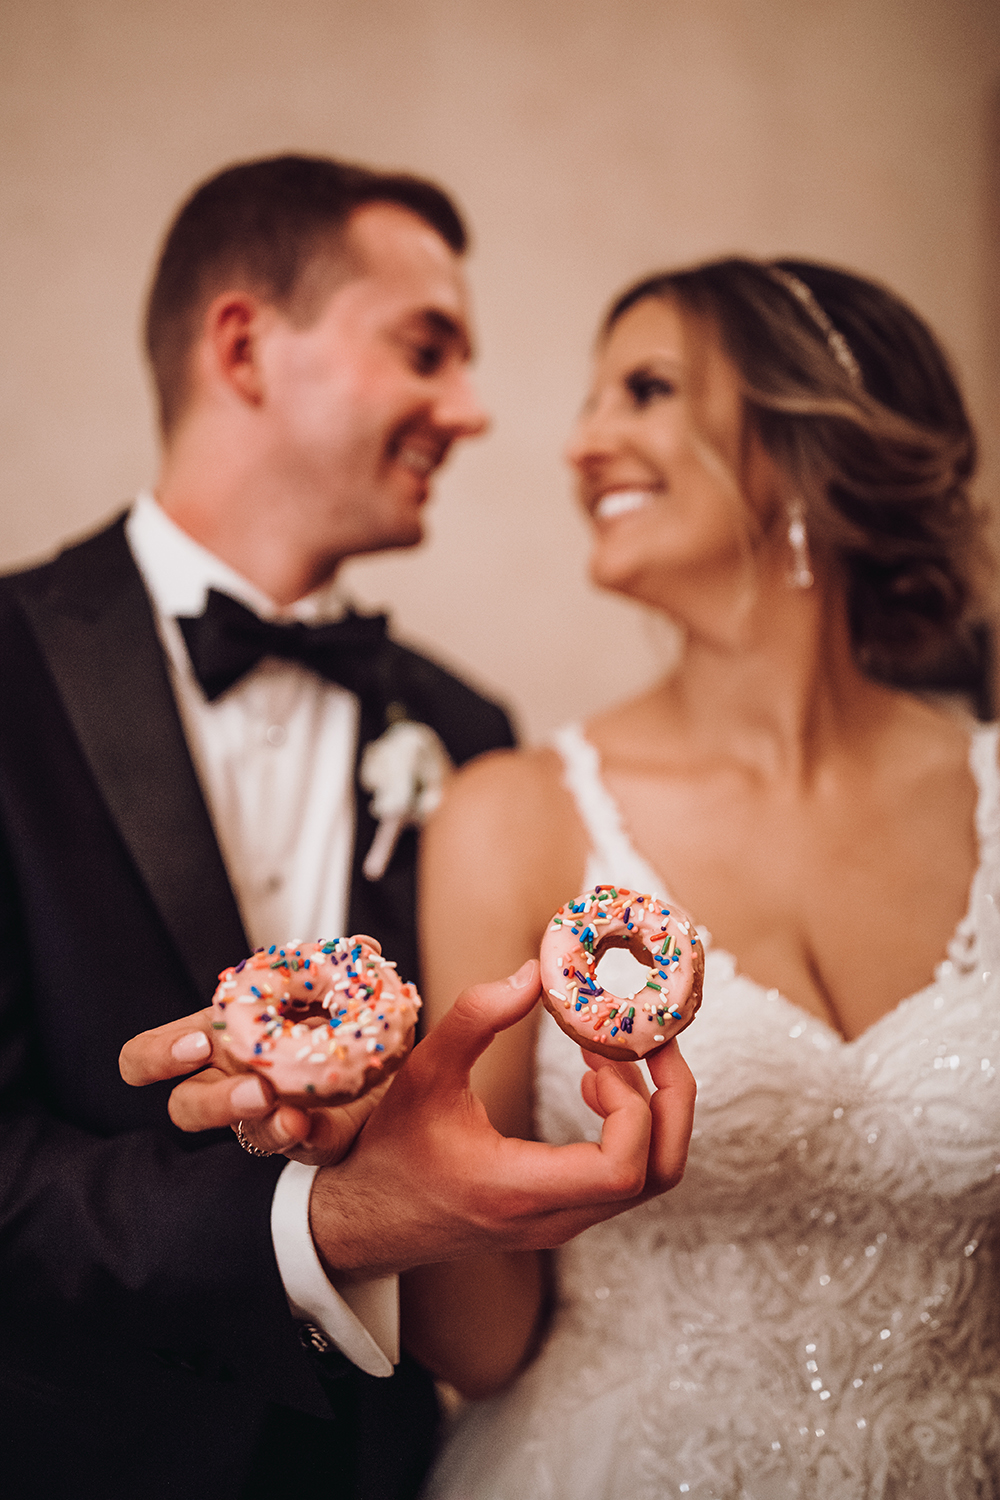 mini ring donuts - cute treats for the bride and groom - desserts